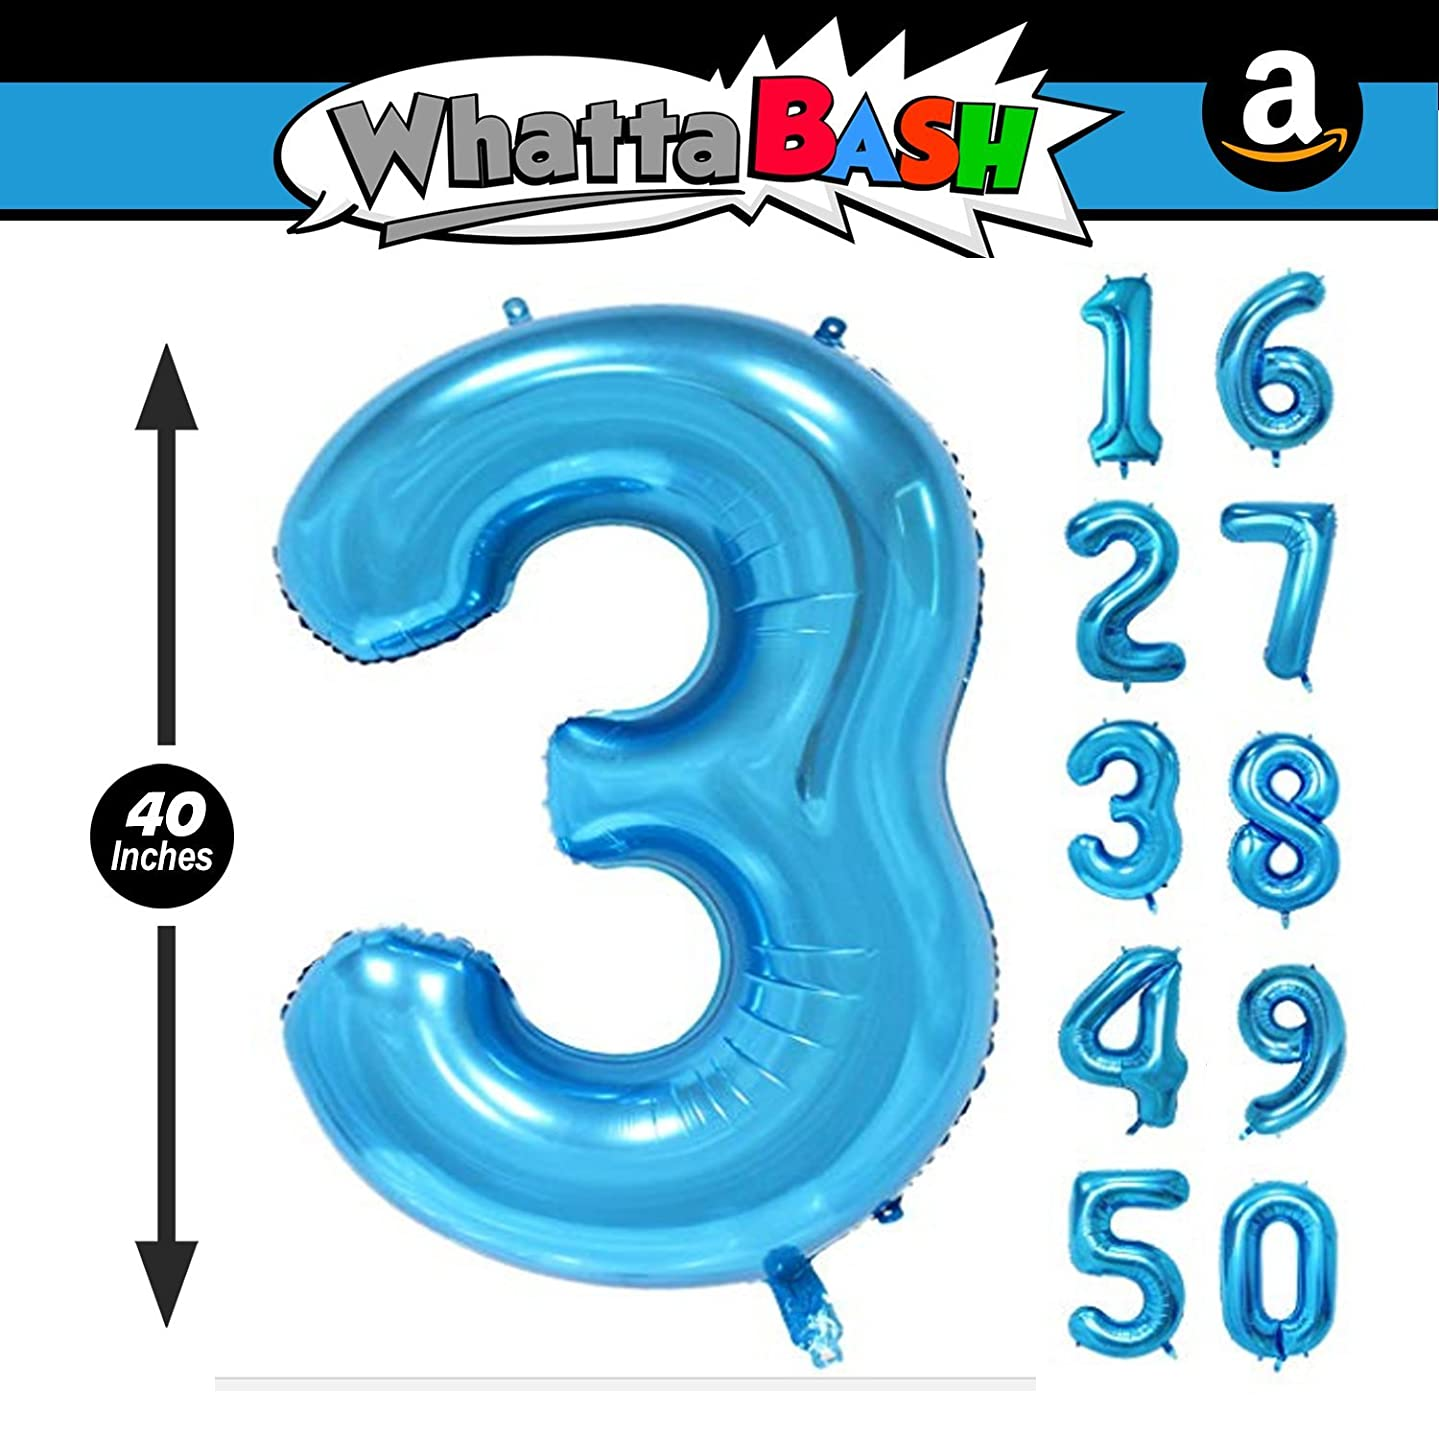 40 Inch Blue Jumbo Number 3 Three Balloon - Giant Large Balloons Foil Decorations Supplies For Birthday Party Wedding Bridal Shower Anniversary Engagement Photo Shoot Gift Accessories (Blue, Number 3)